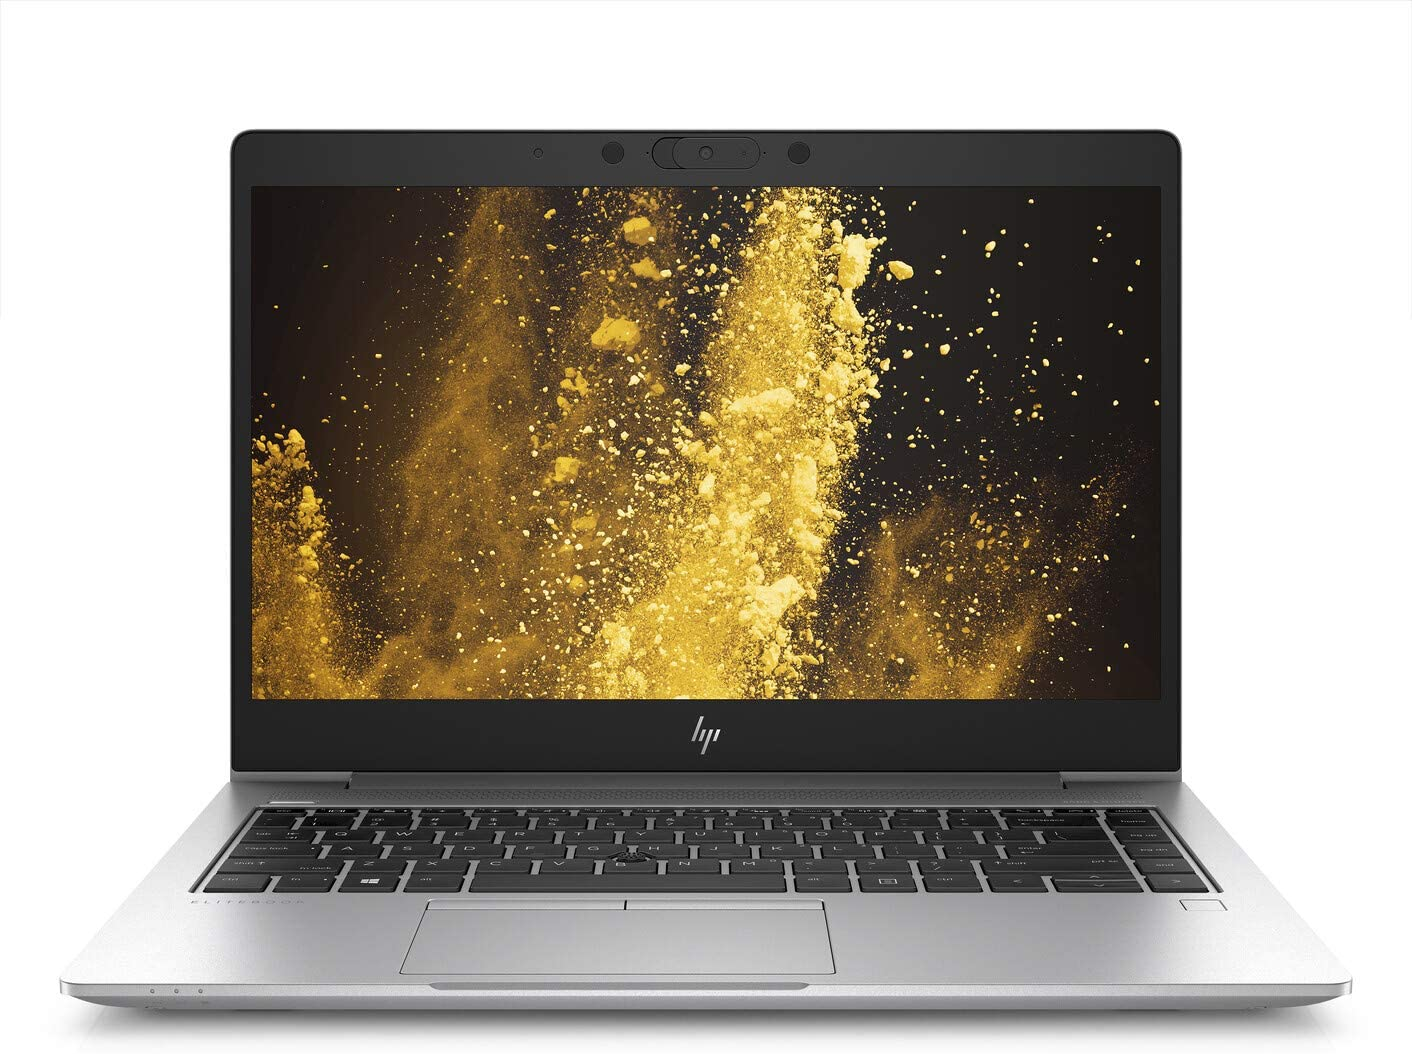 "HP EliteBook 745 G6 14"" Touchscreen Notebook - 1920 x 1080 - Ryzen 7 3700U - 16 GB RAM - 512 GB SSD - Windows 10 Pro 64-bit - AMD Radeon Vega - in-Plane Switching (IPS) Technology - English Keybo"